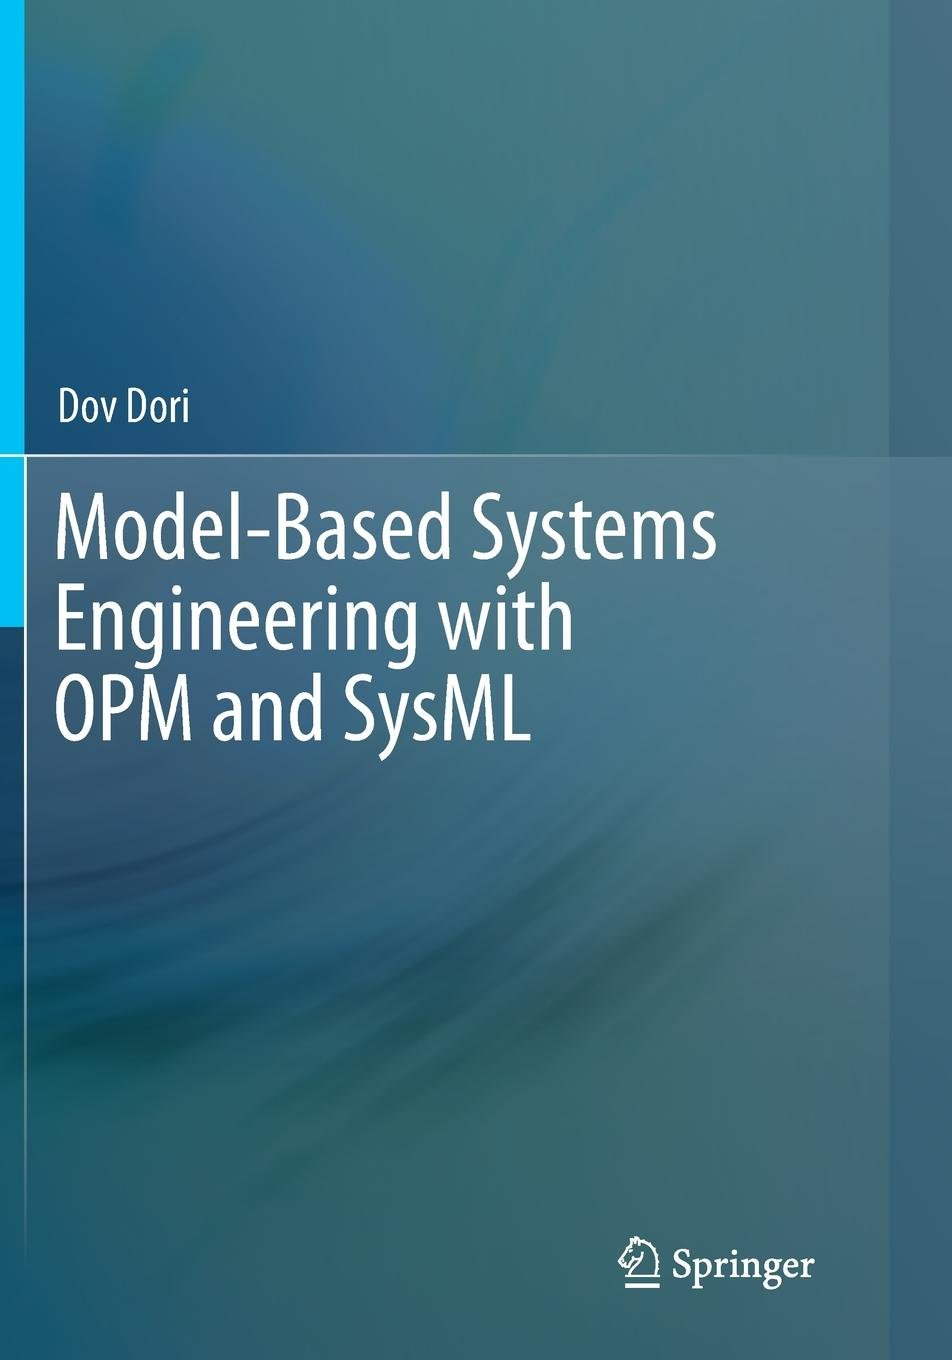 Model-Based Systems Engineering with OPM and SysML por Dov Dori